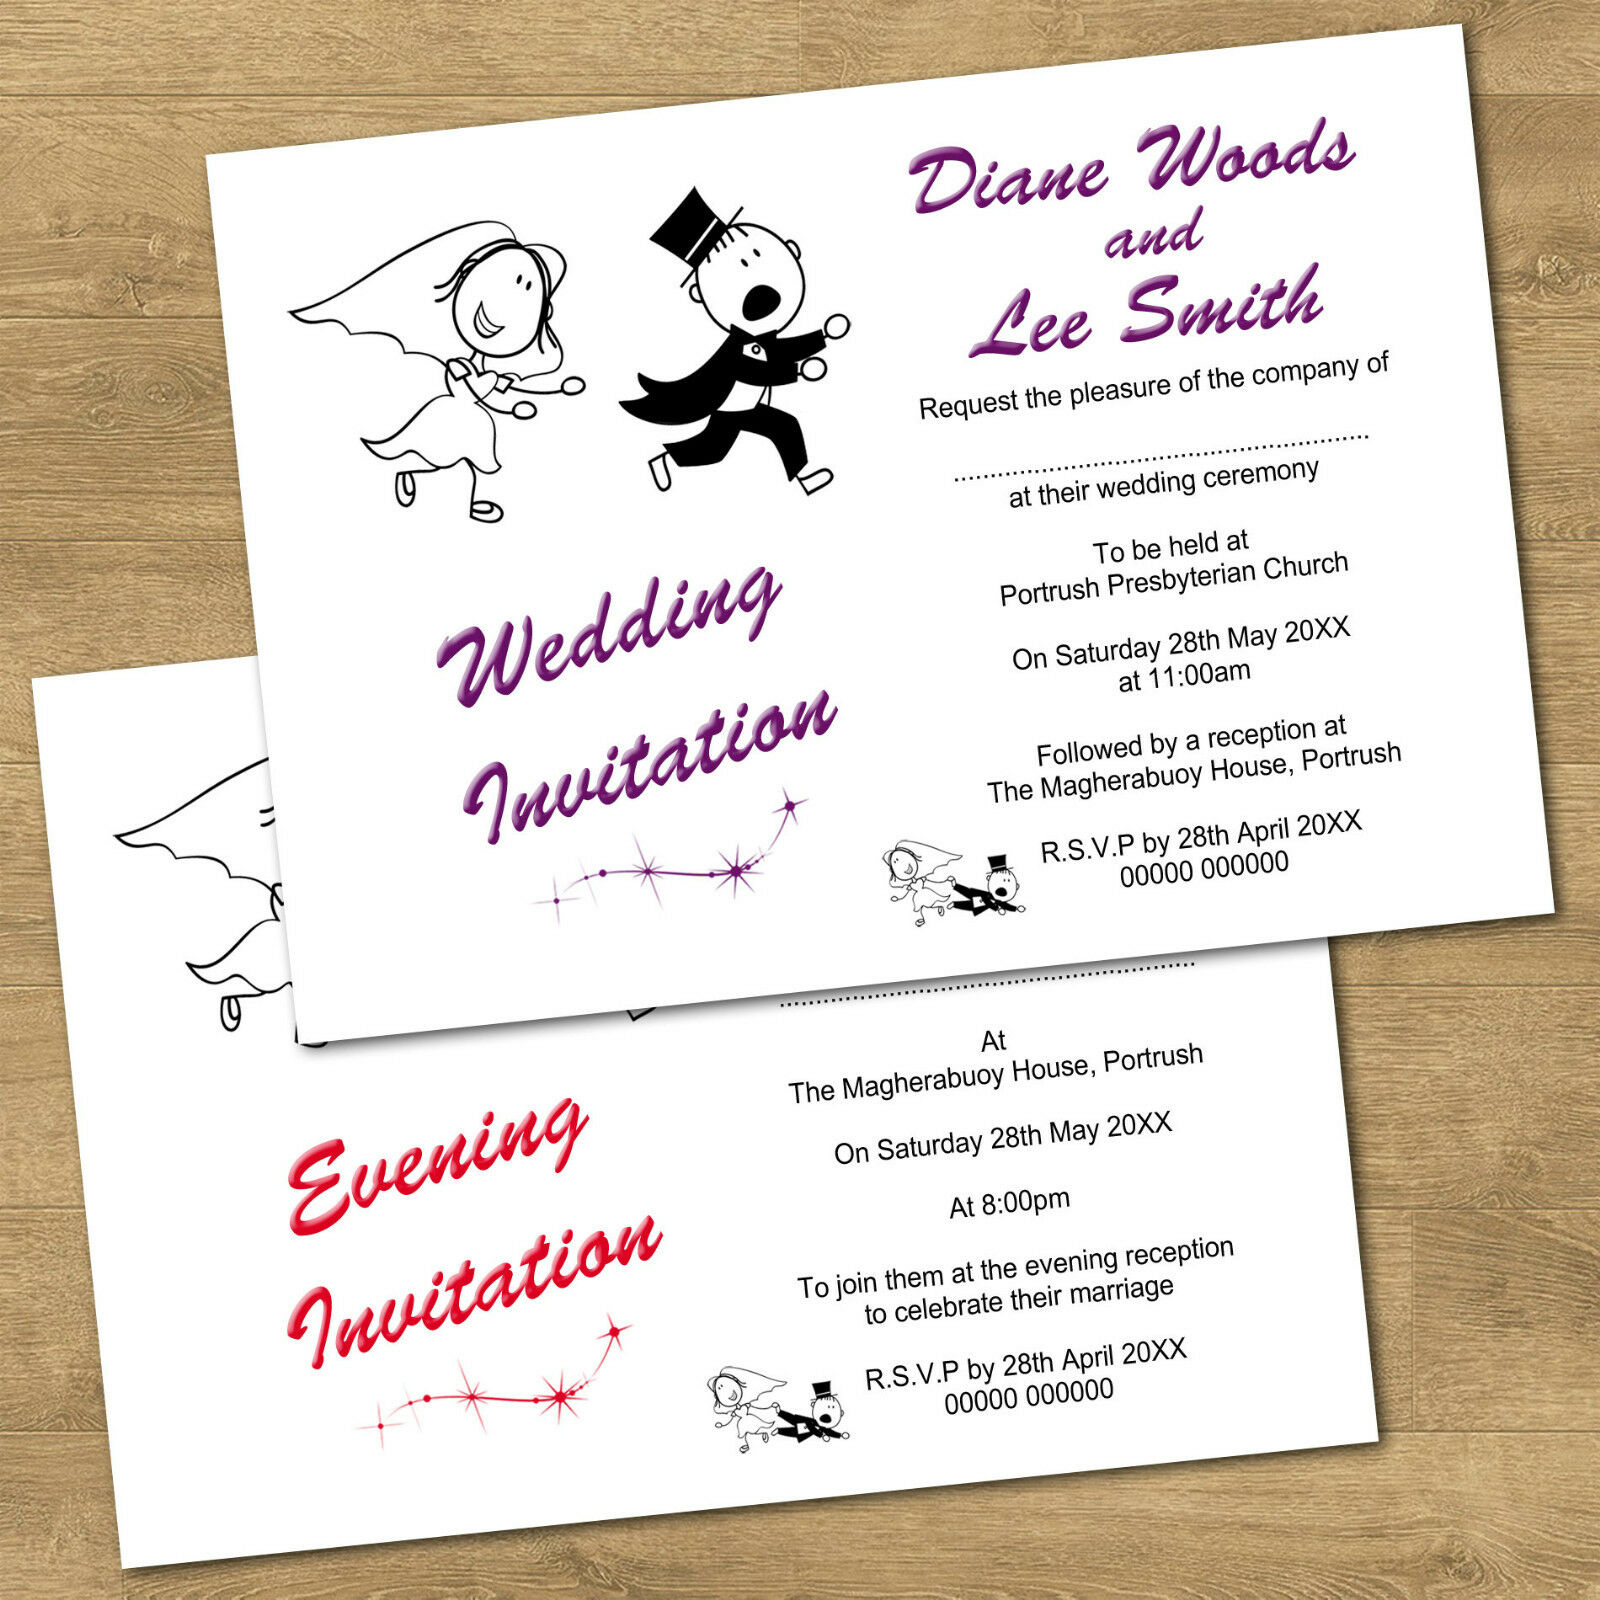 personalised day evening funny wedding invitations rg2 With wedding evening invitations funny